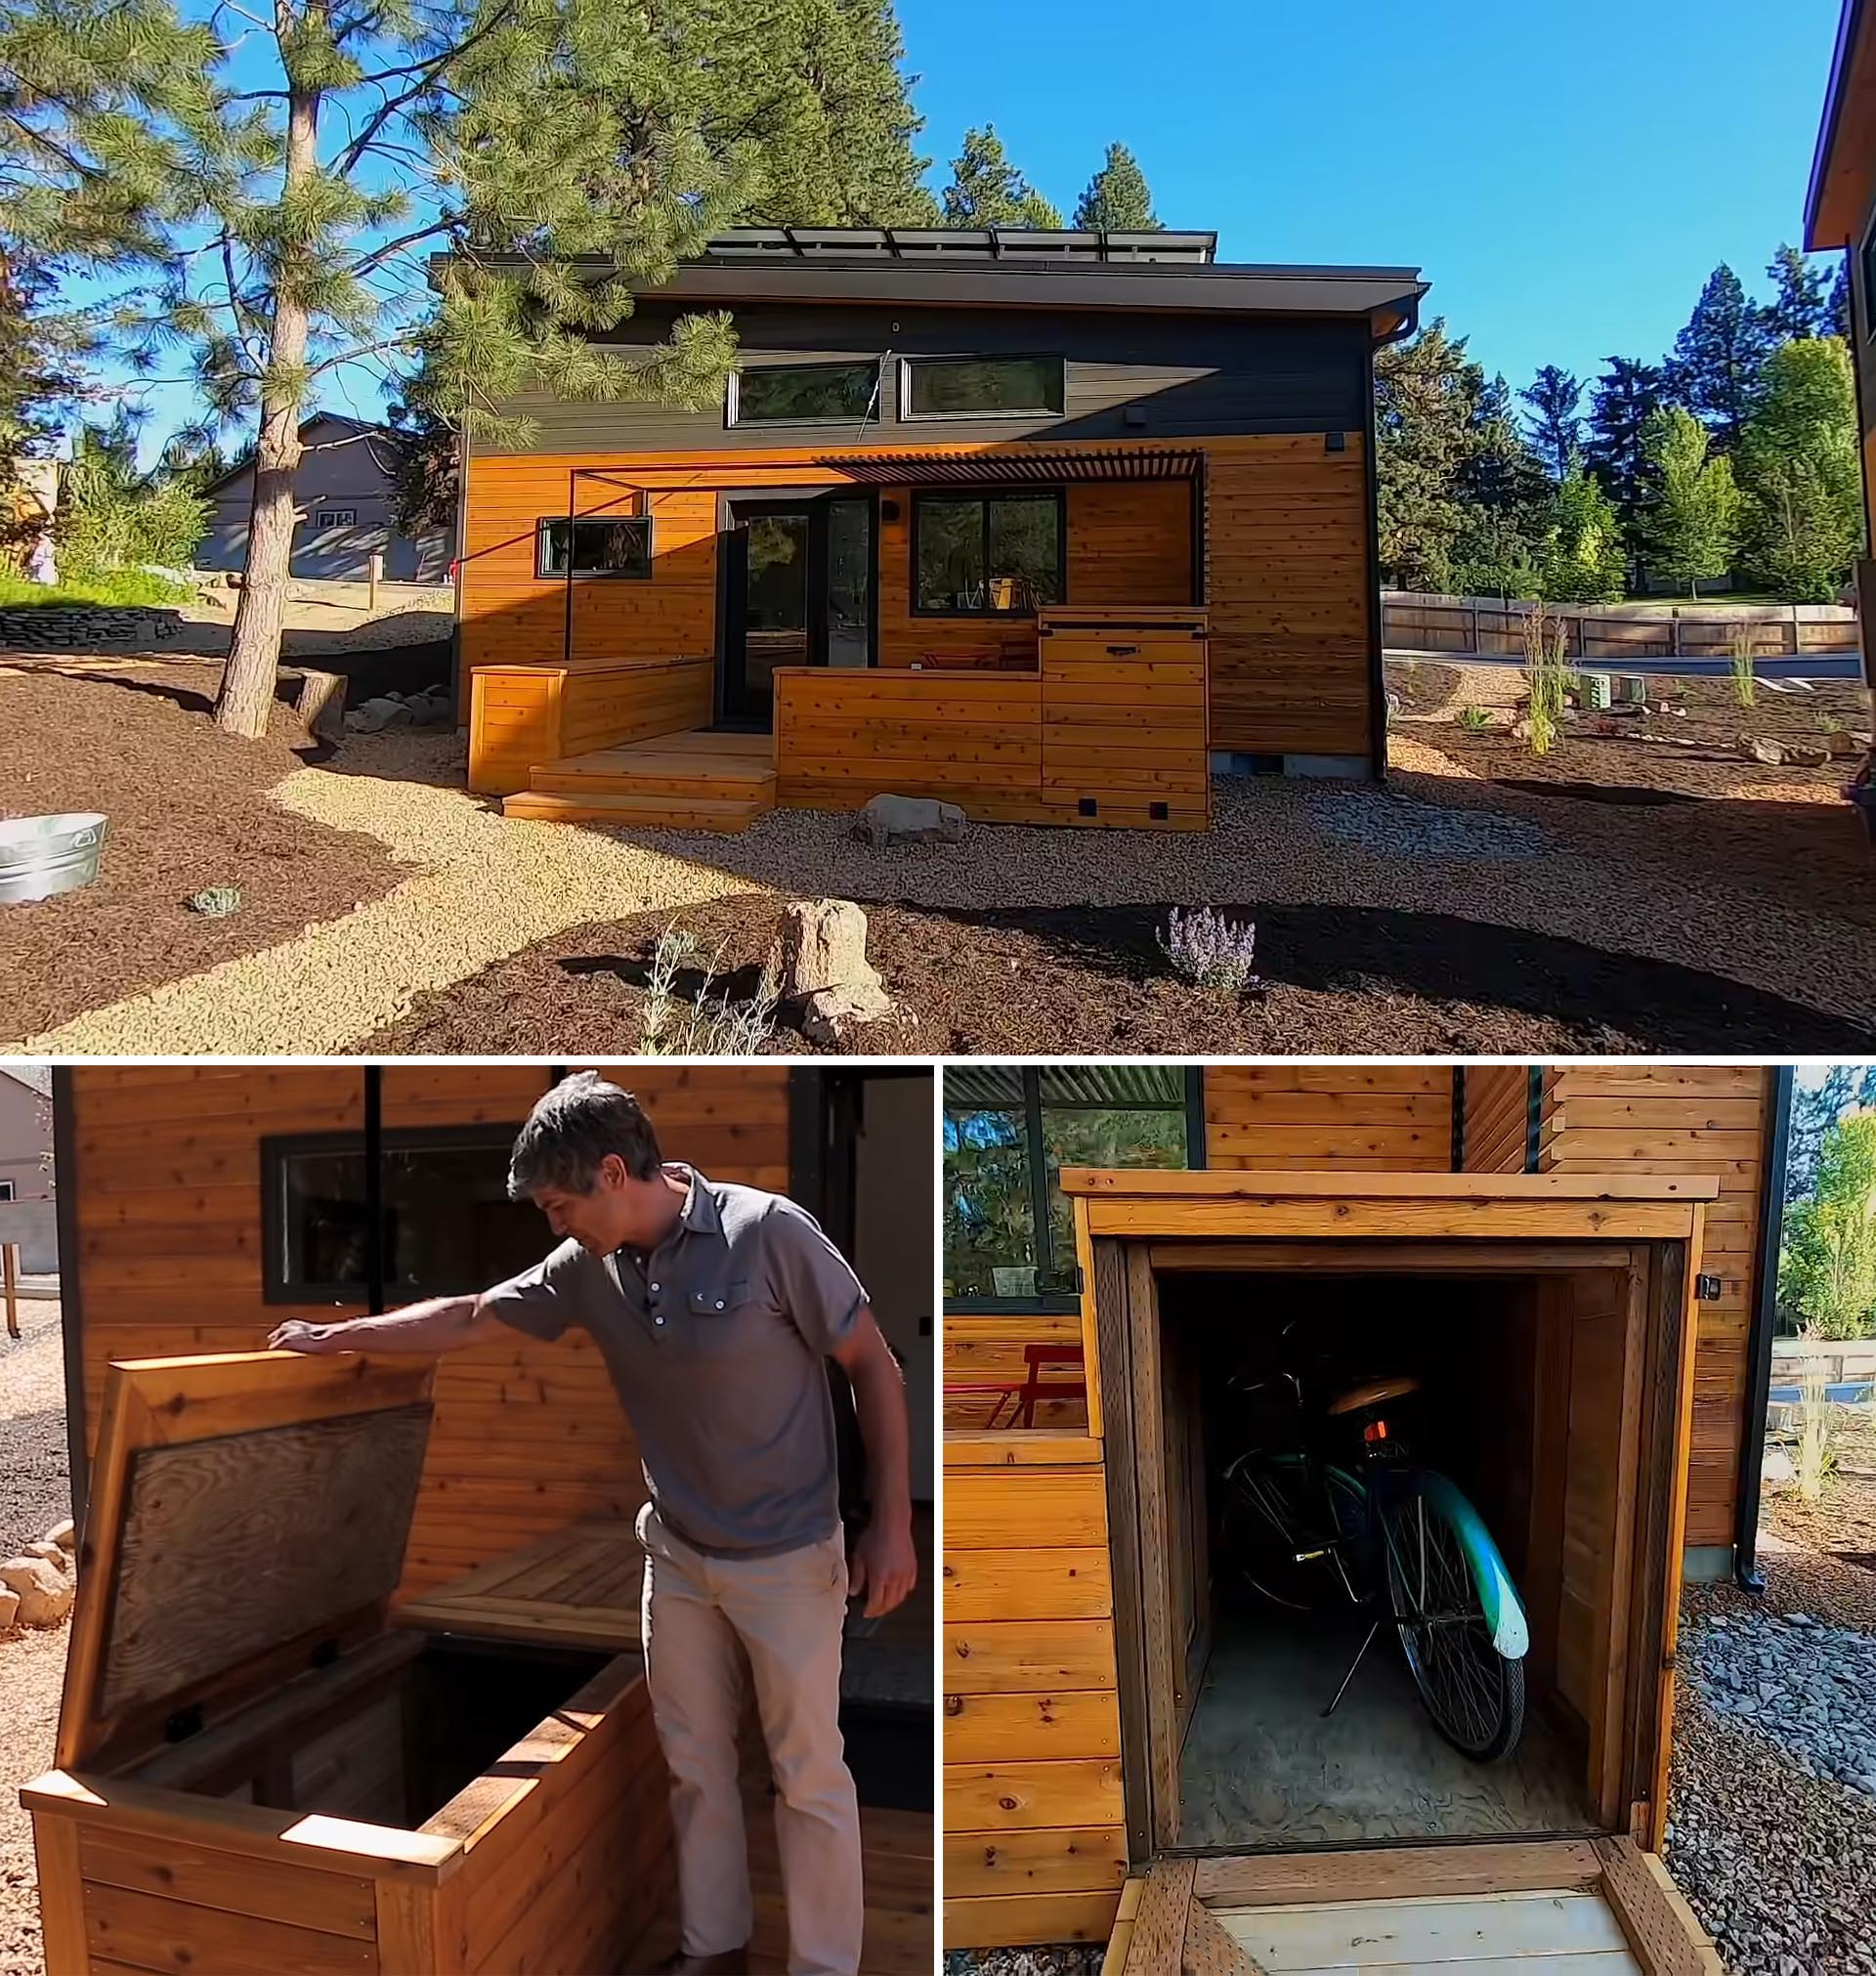 A modern wood clad tiny house with a deck, pergola, and storage boxes.